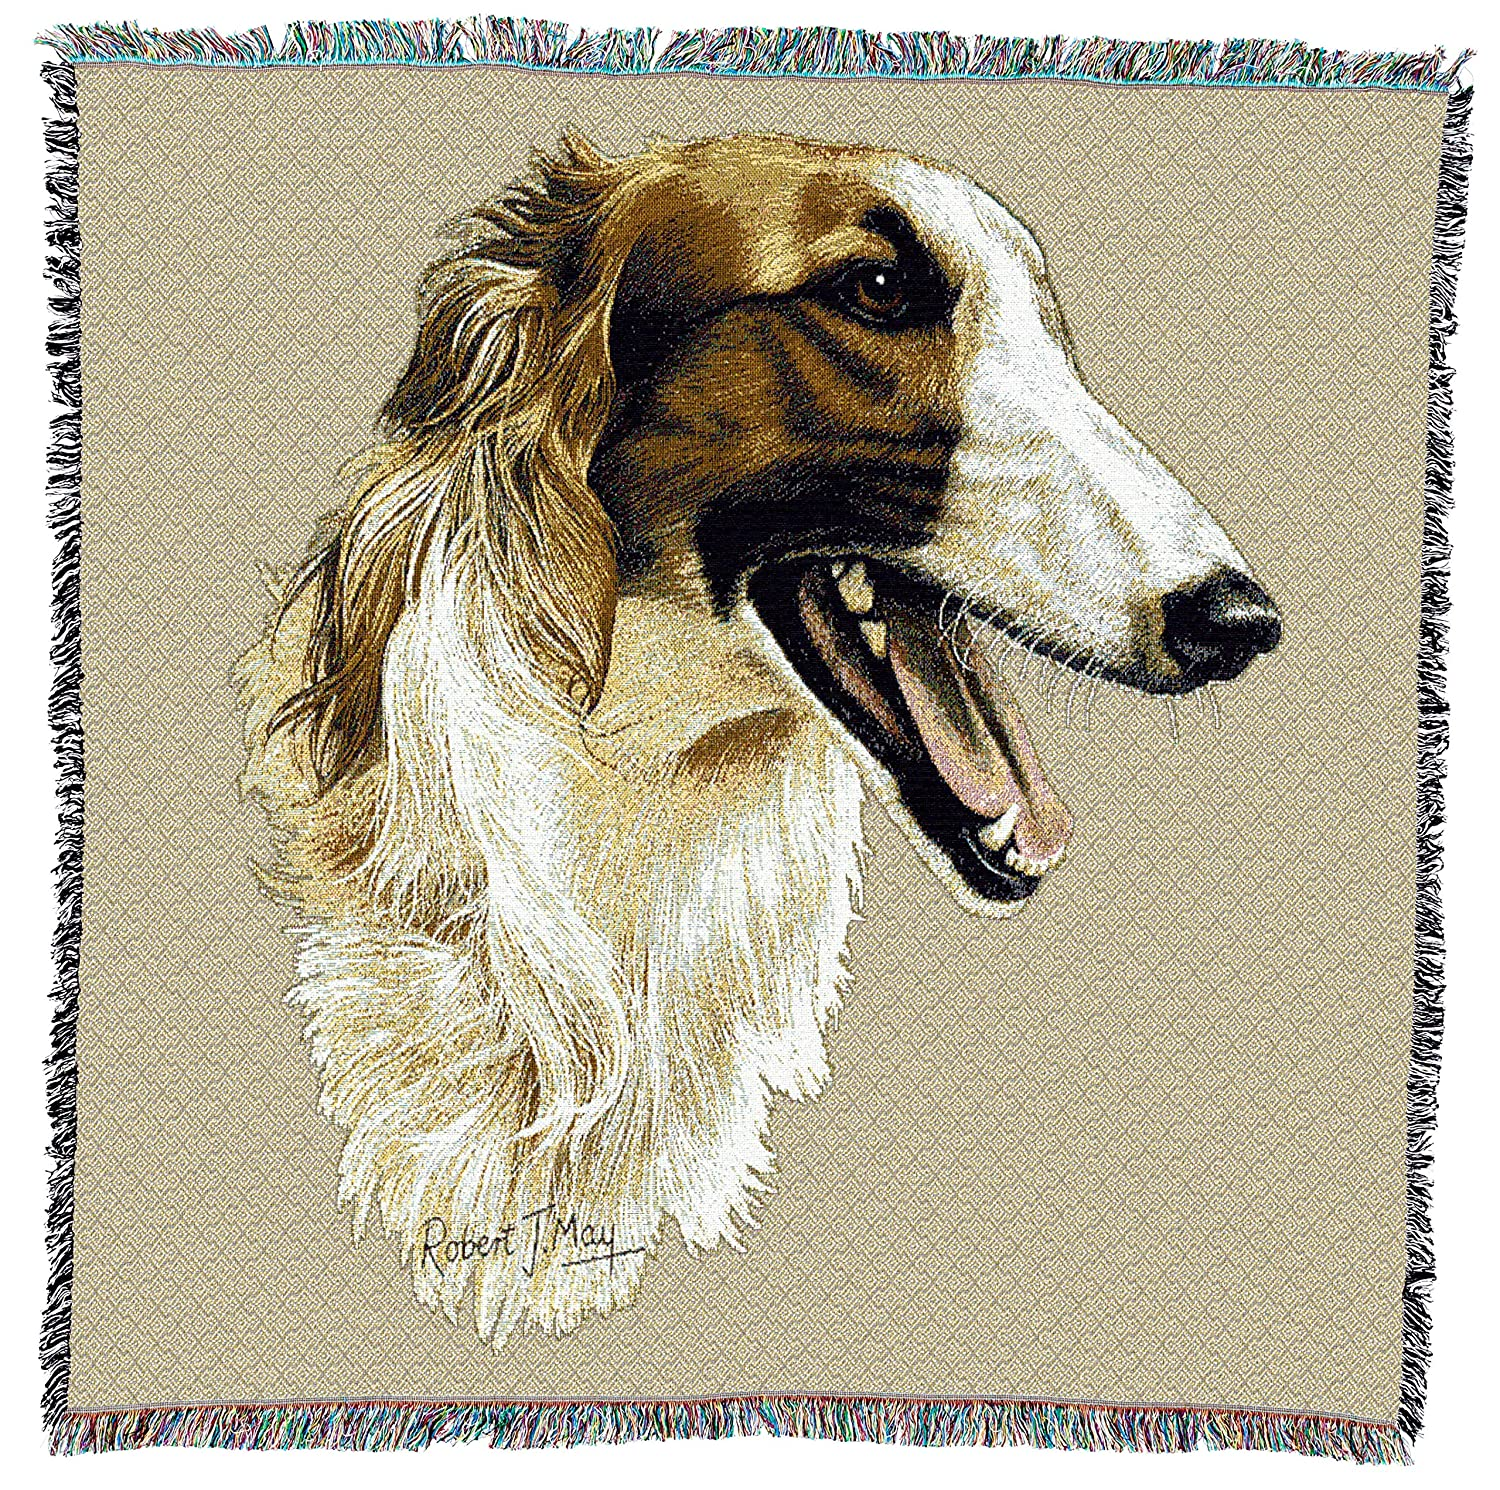 Pure Country Weavers USA Size 54x54 Borzoi Woven Throw Blanket with Fringe Cotton